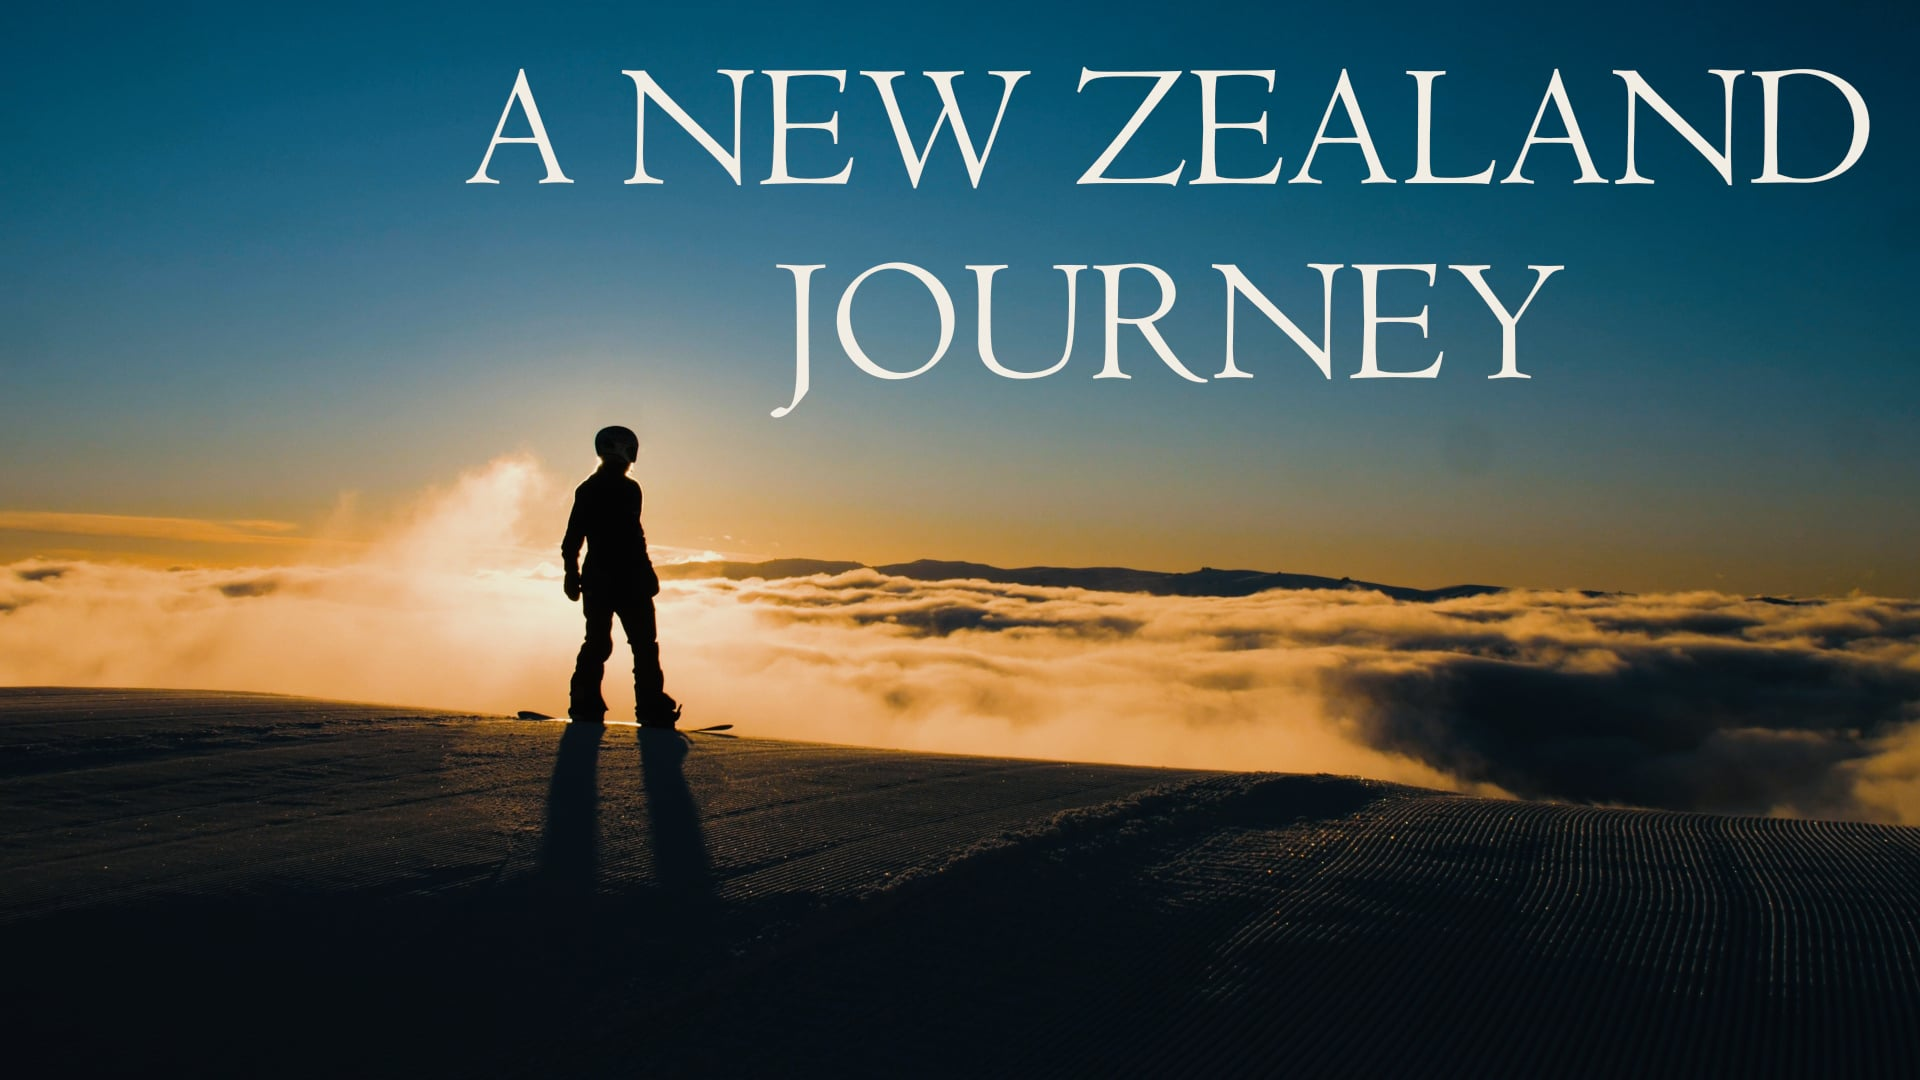 A New Zealand Journey ft. Toby Miller